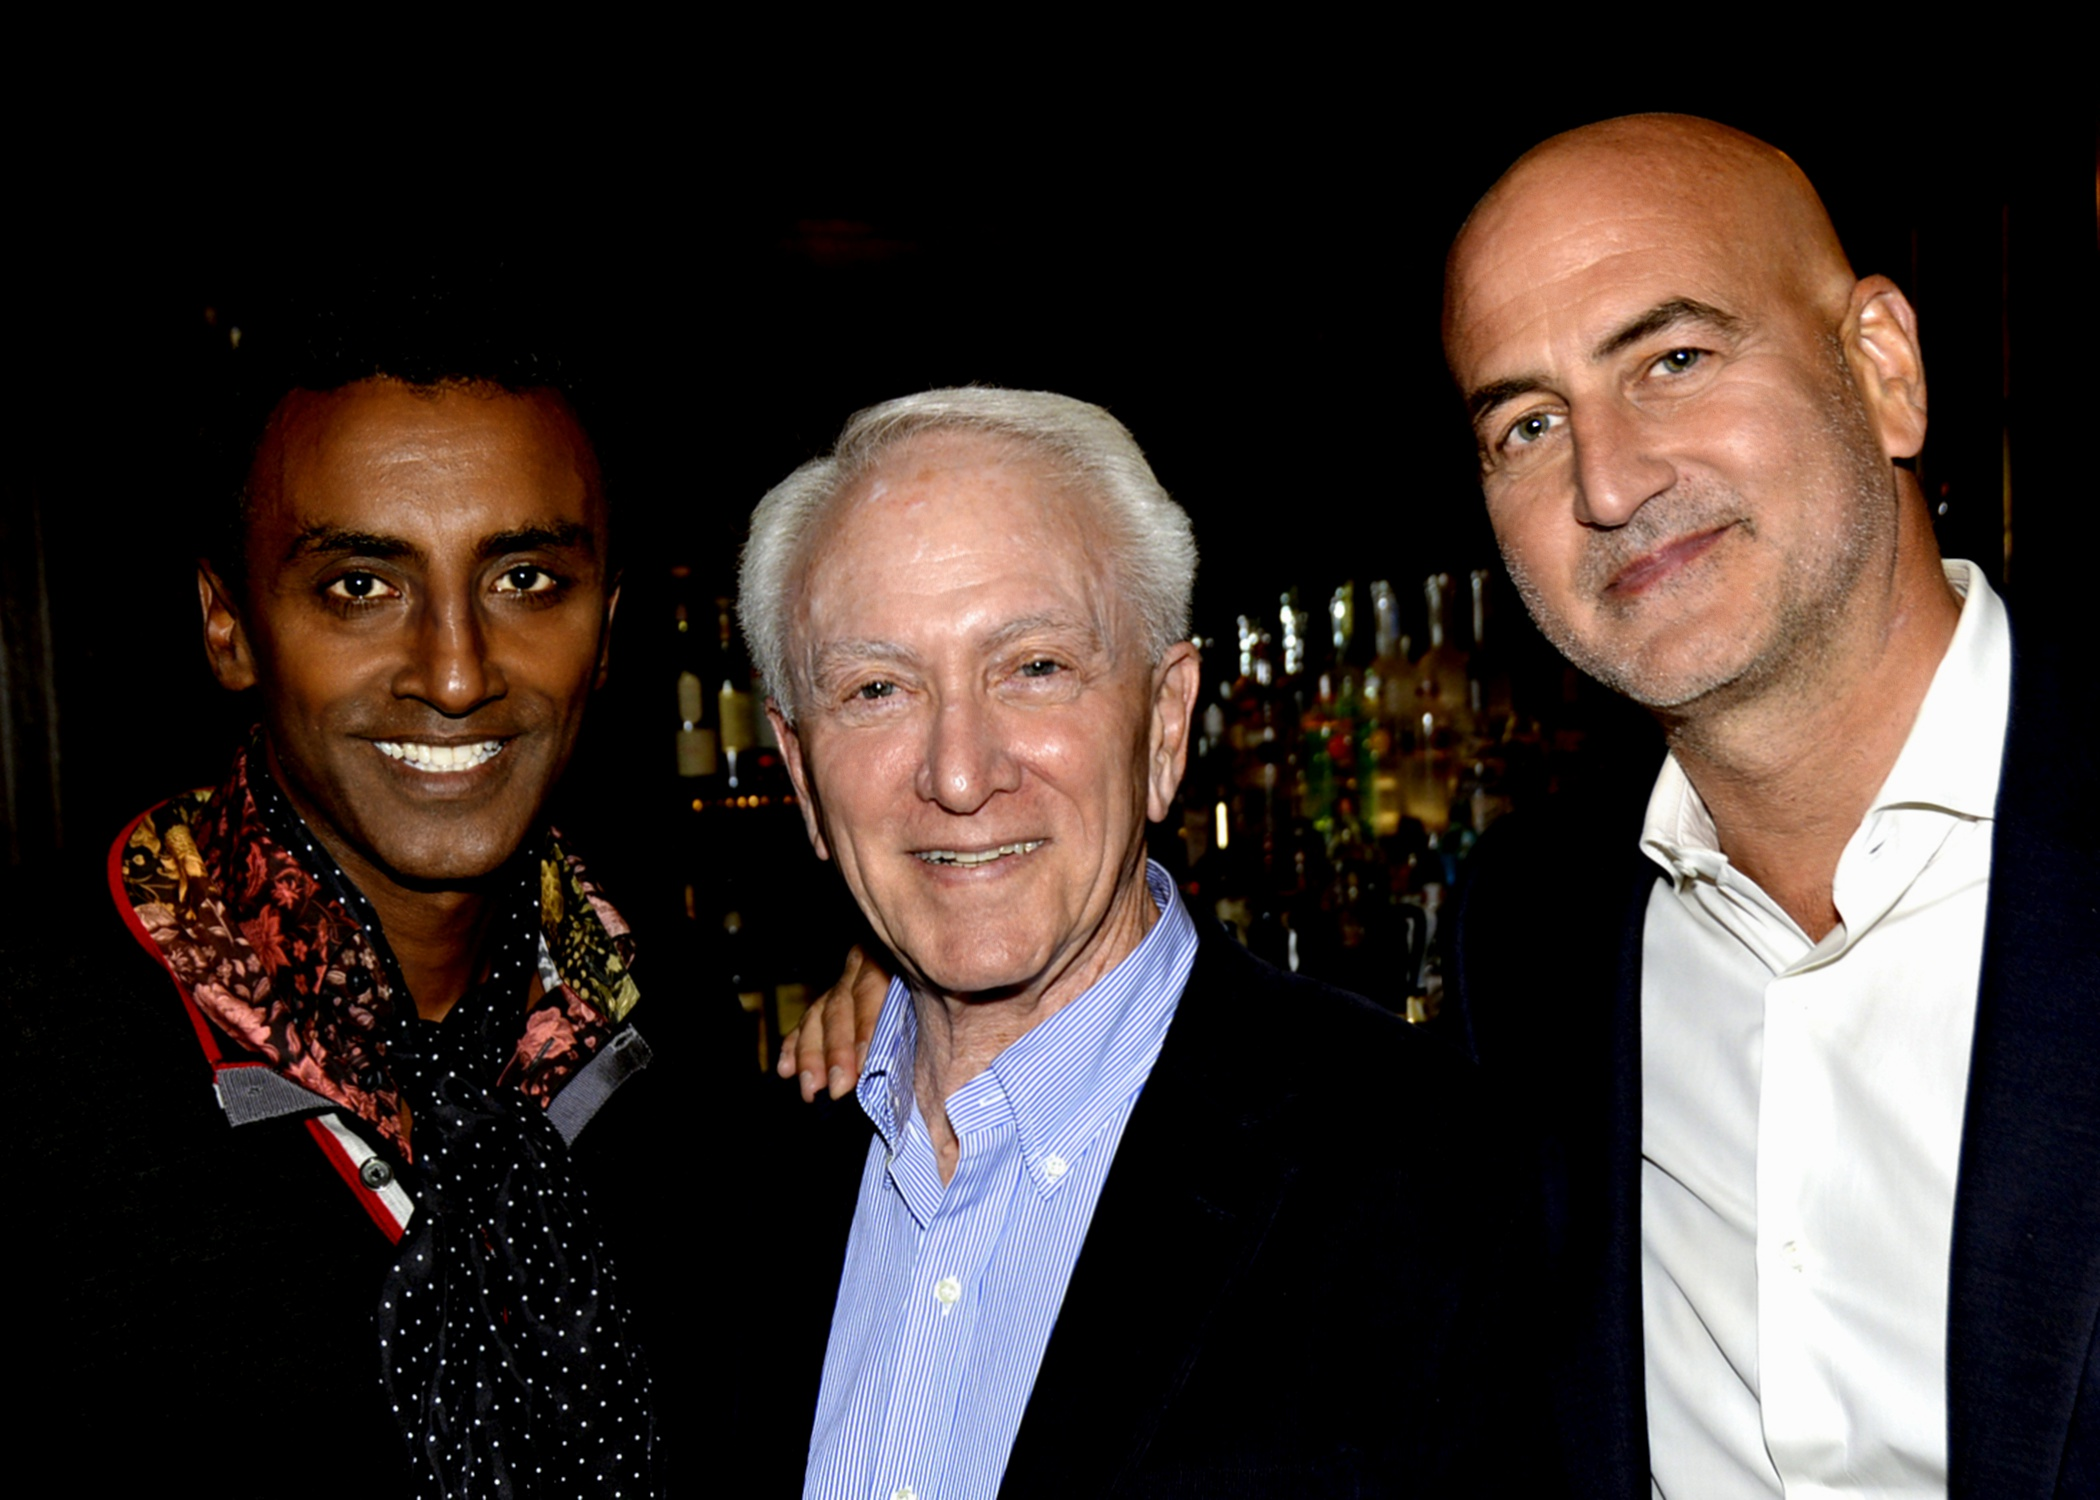 Marcus Samuelsson, Richard Grausman, Mark Weiss